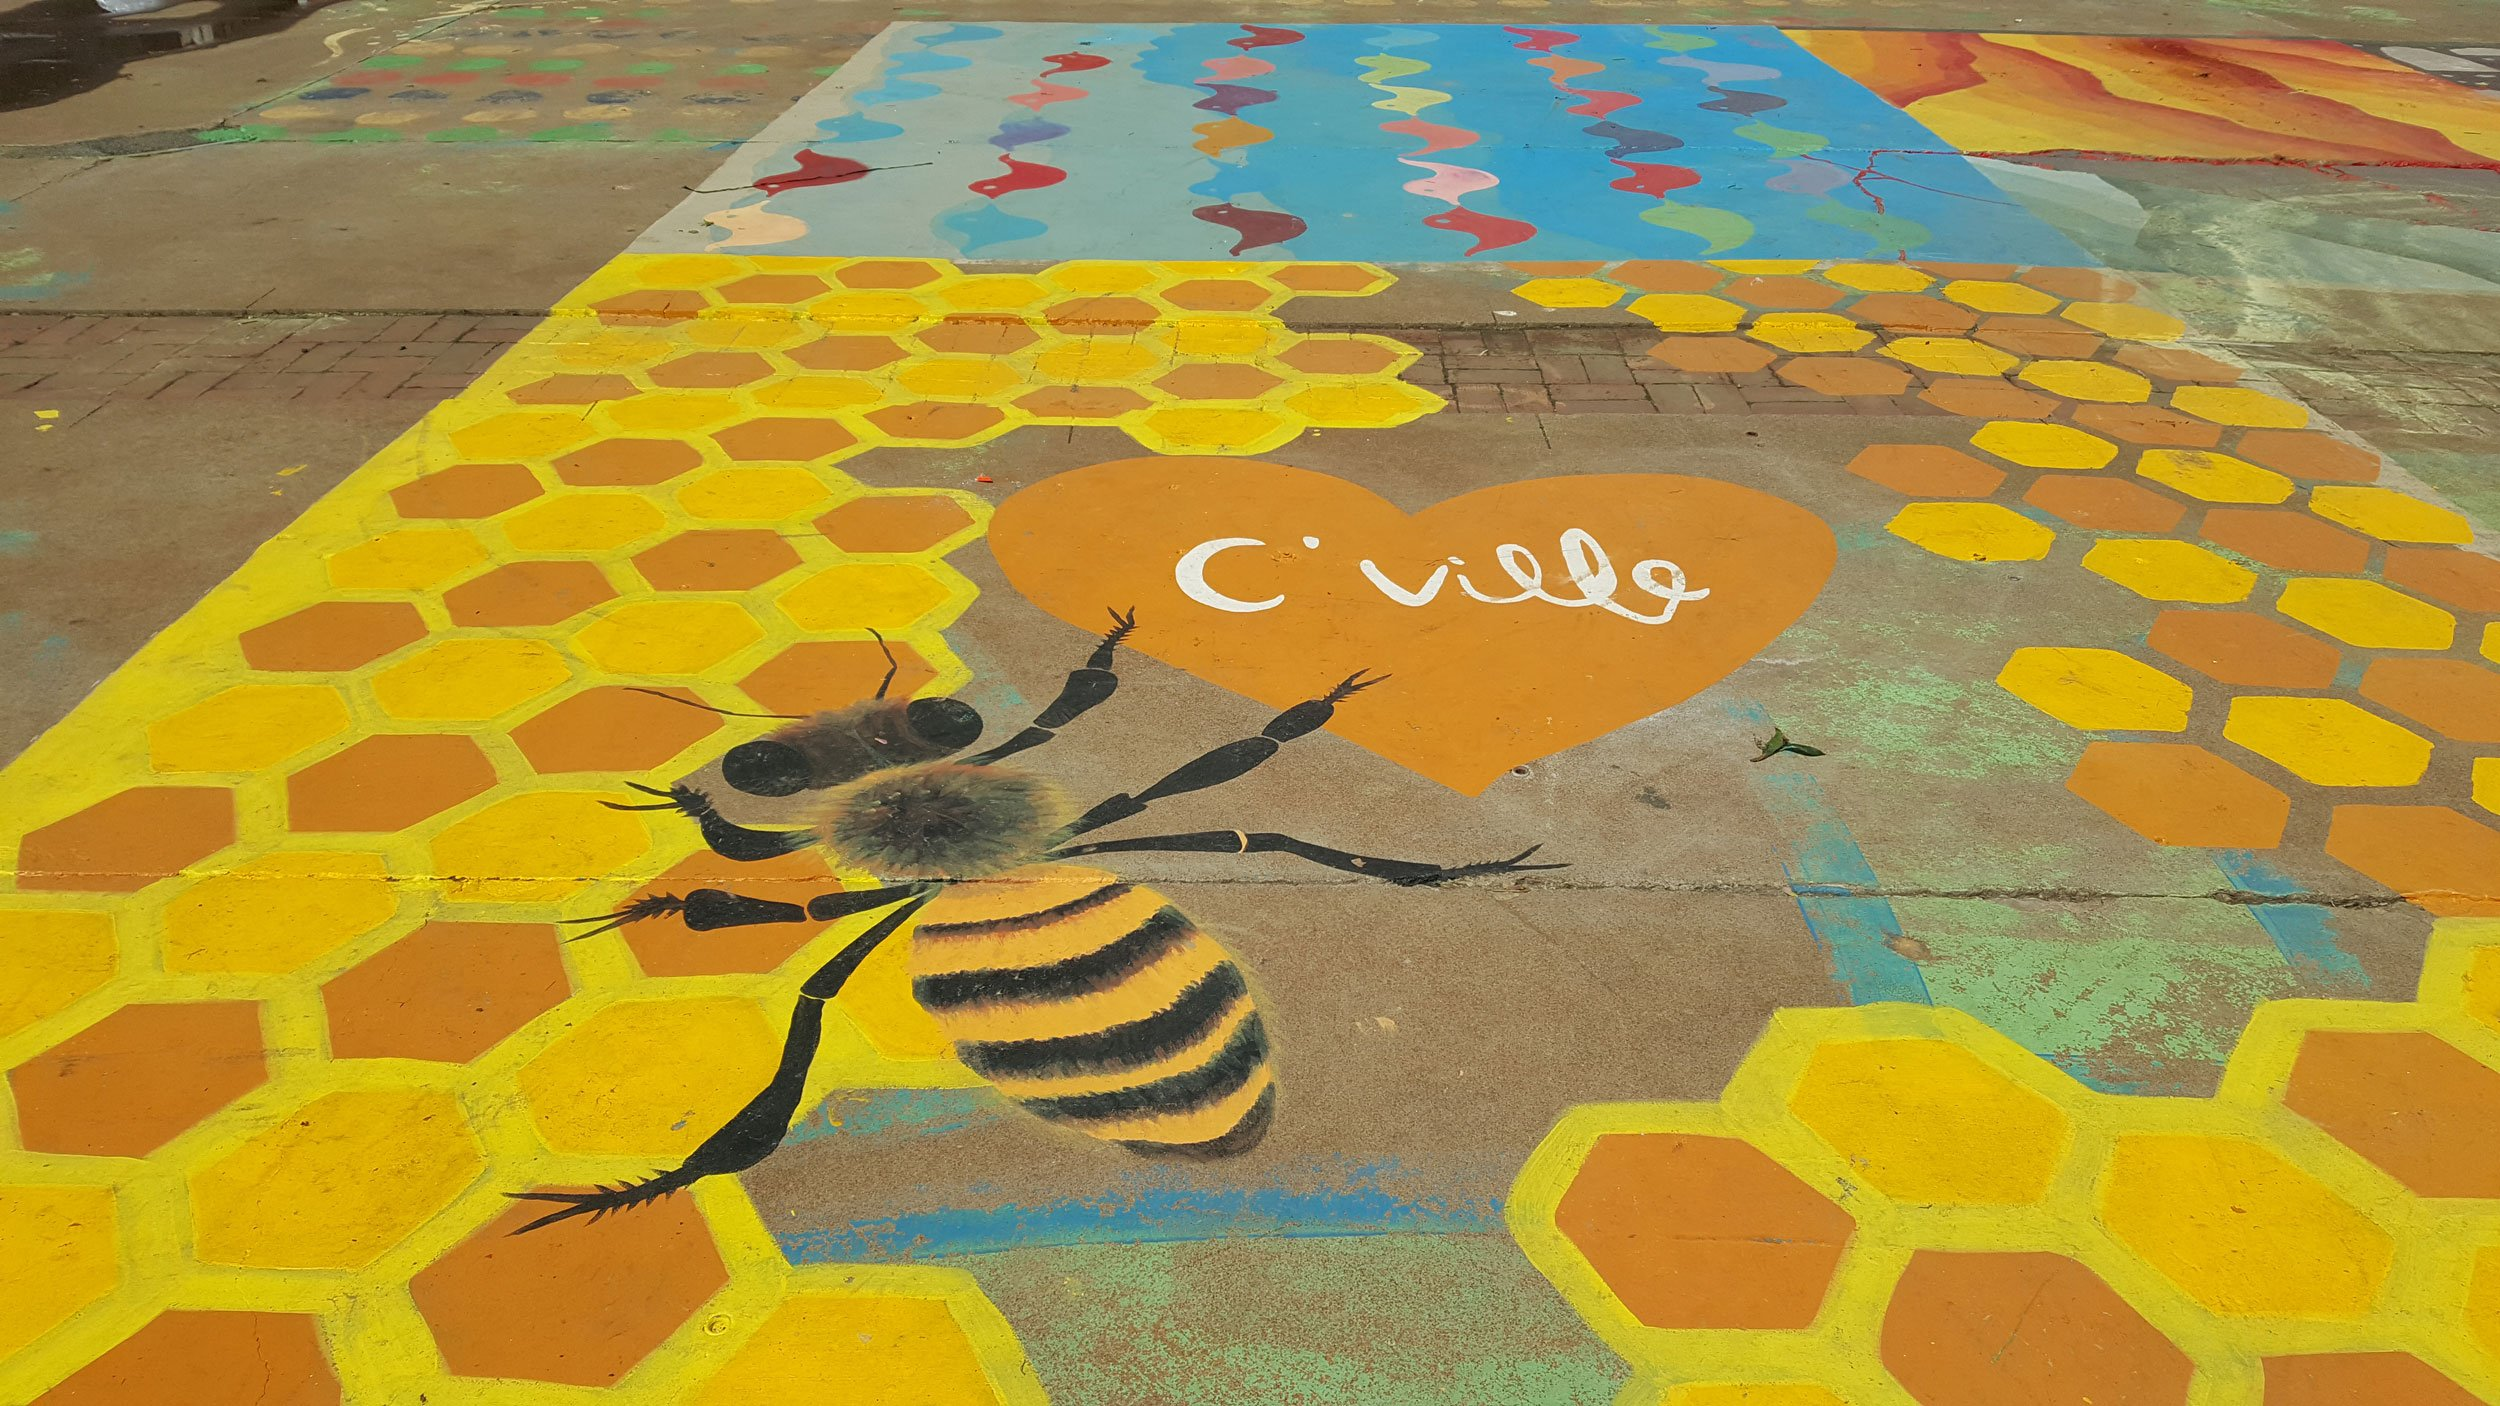 bumblebee mural at IX Art Park | Free Things to Do in Charlottesville Virginia